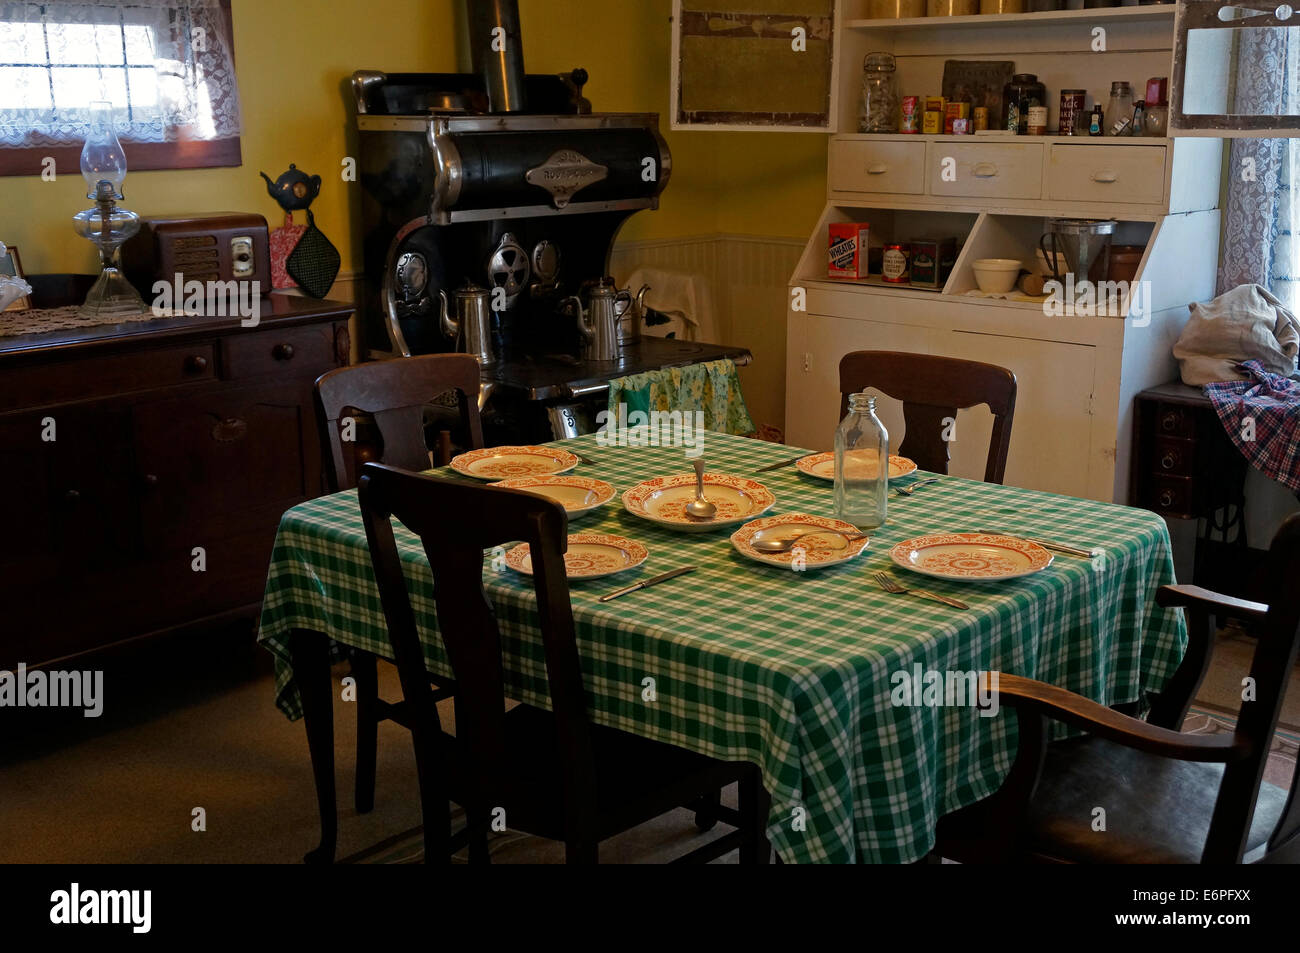 Old-fashioned kitchen and dining room in the Steveston Museum, Steveston Village, Richmond, British Columbia, Canada - Stock Image